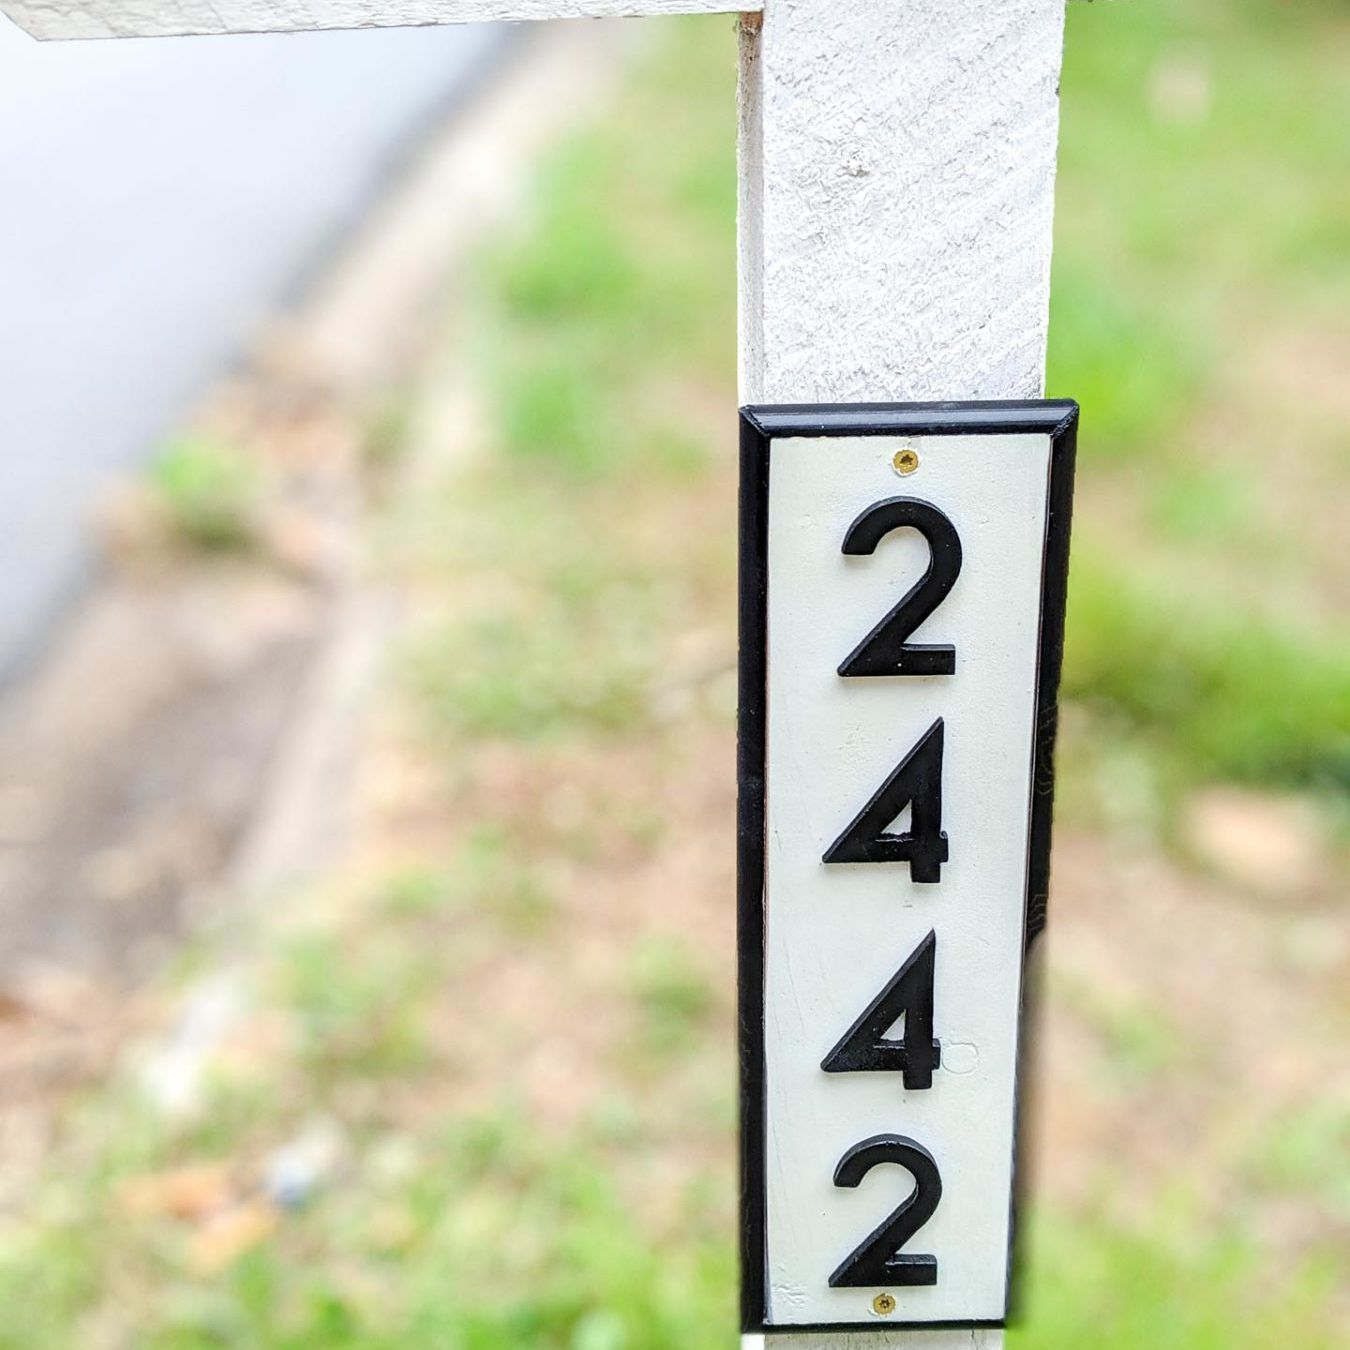 House numbers printed on a mailbox post.